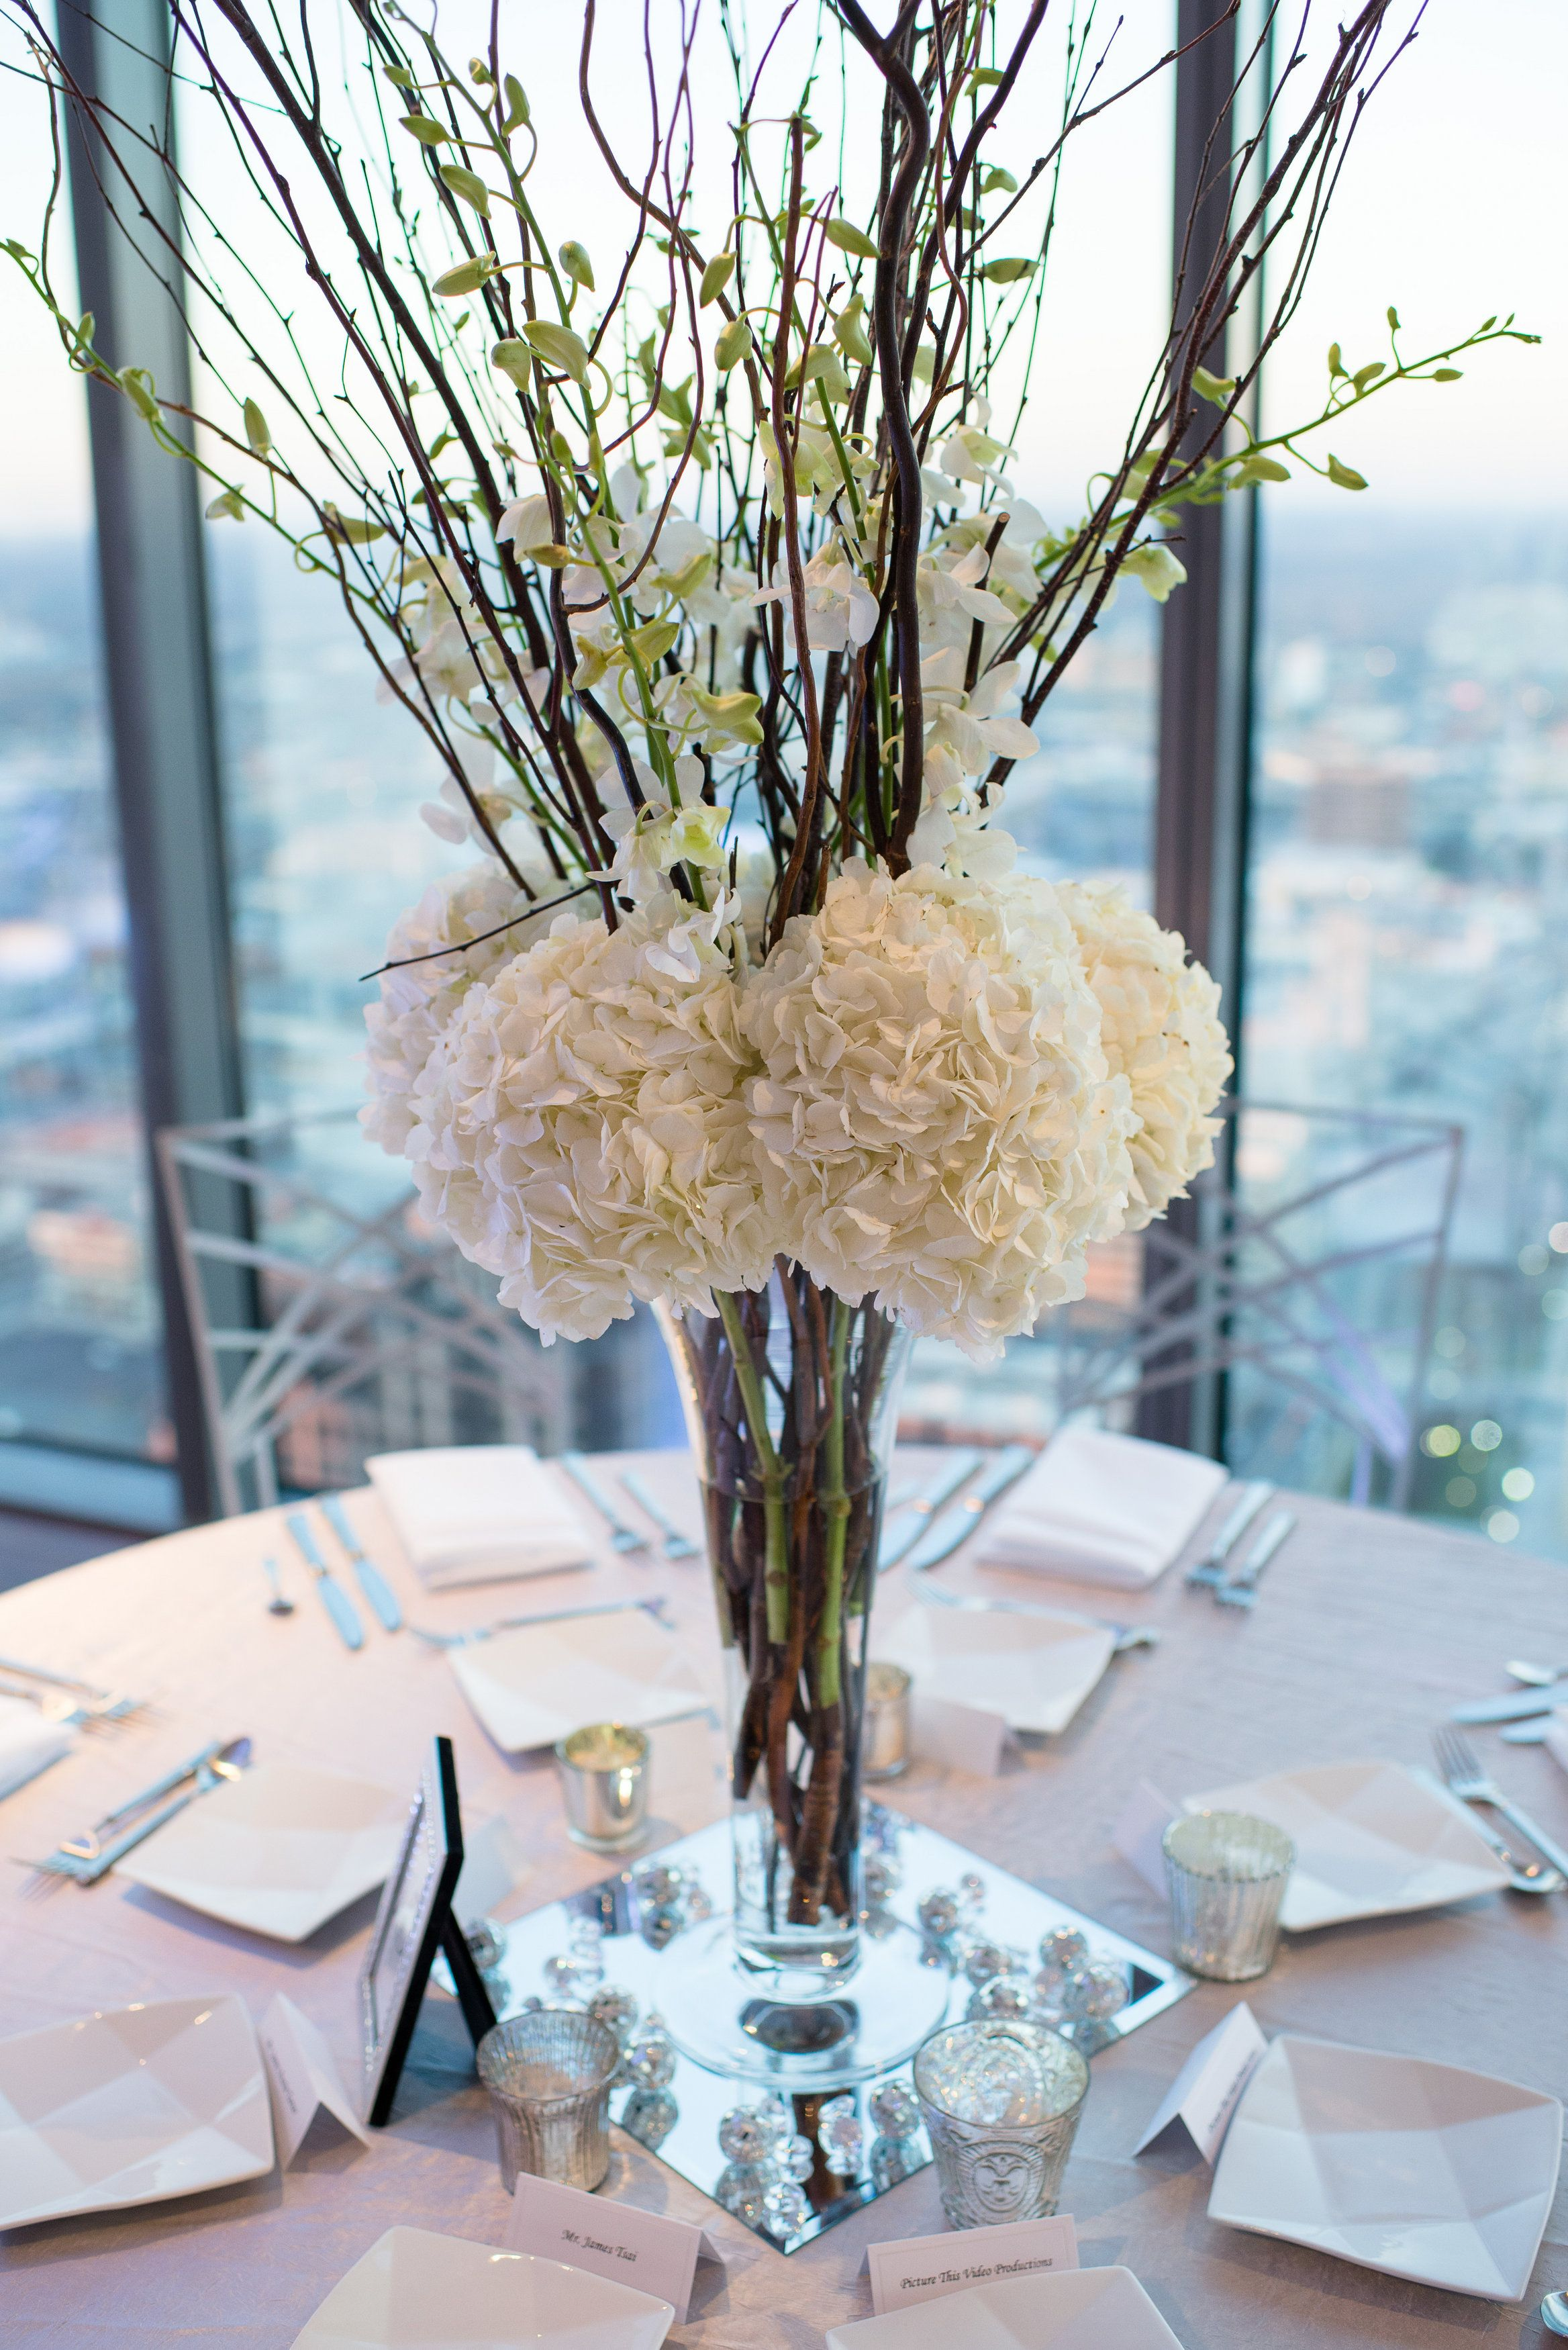 Tall Wedding Centerpiece With Hydrangeas And Orchids Simple And Elegant